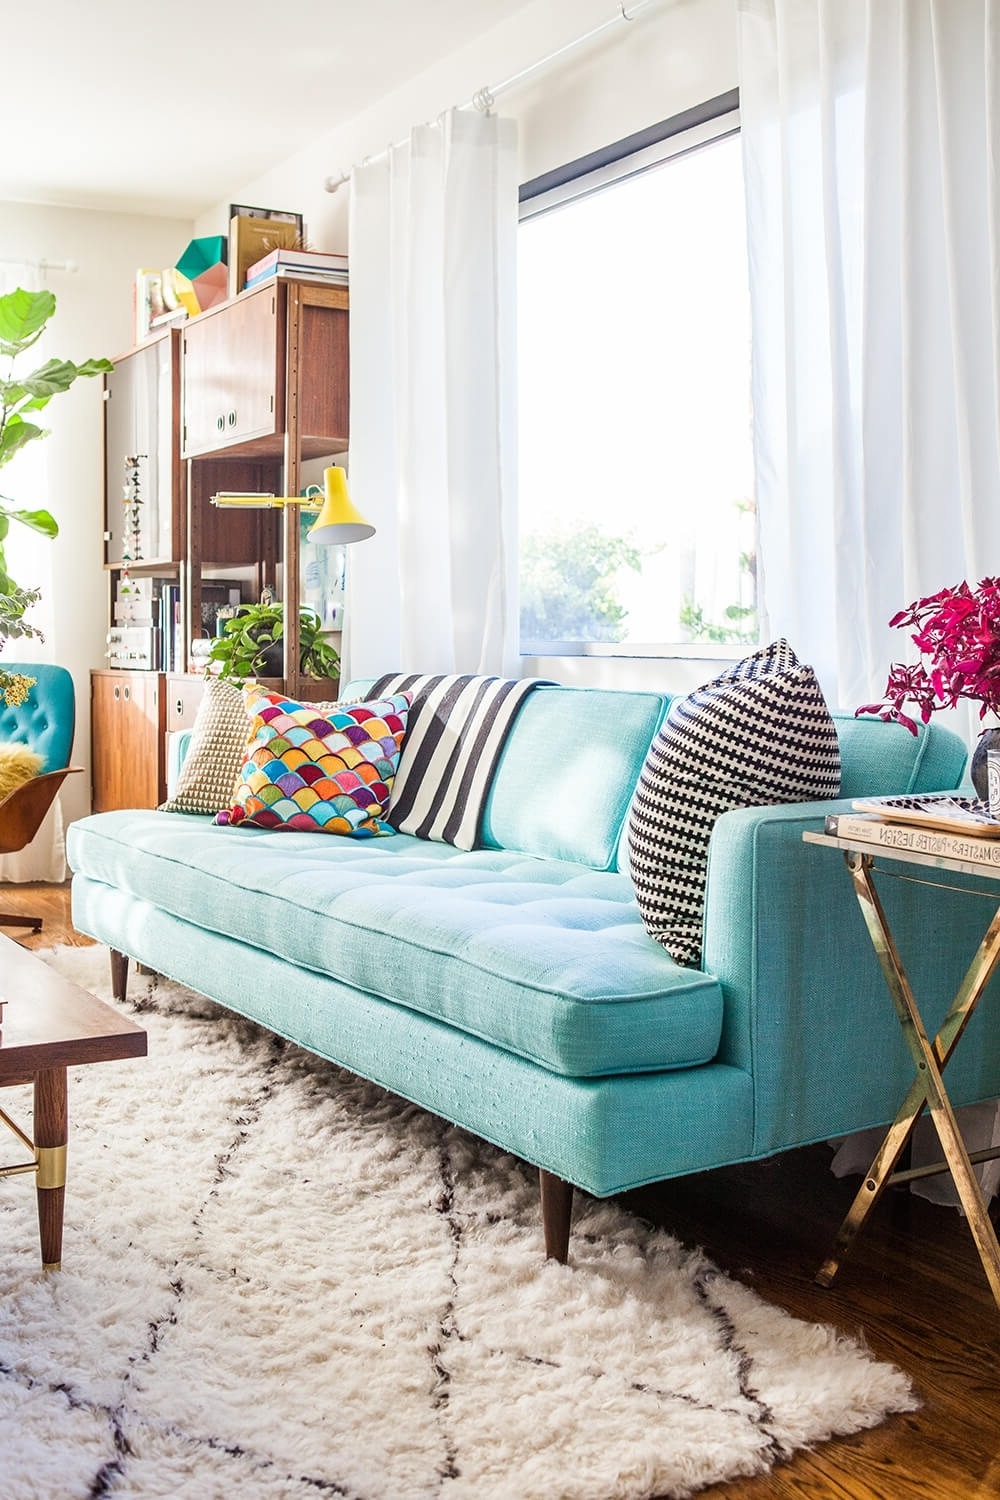 Affordable Tufted Sofas For Well Known 84 Affordable Amazing Sofas Under $1000 – Emily Henderson (View 9 of 15)